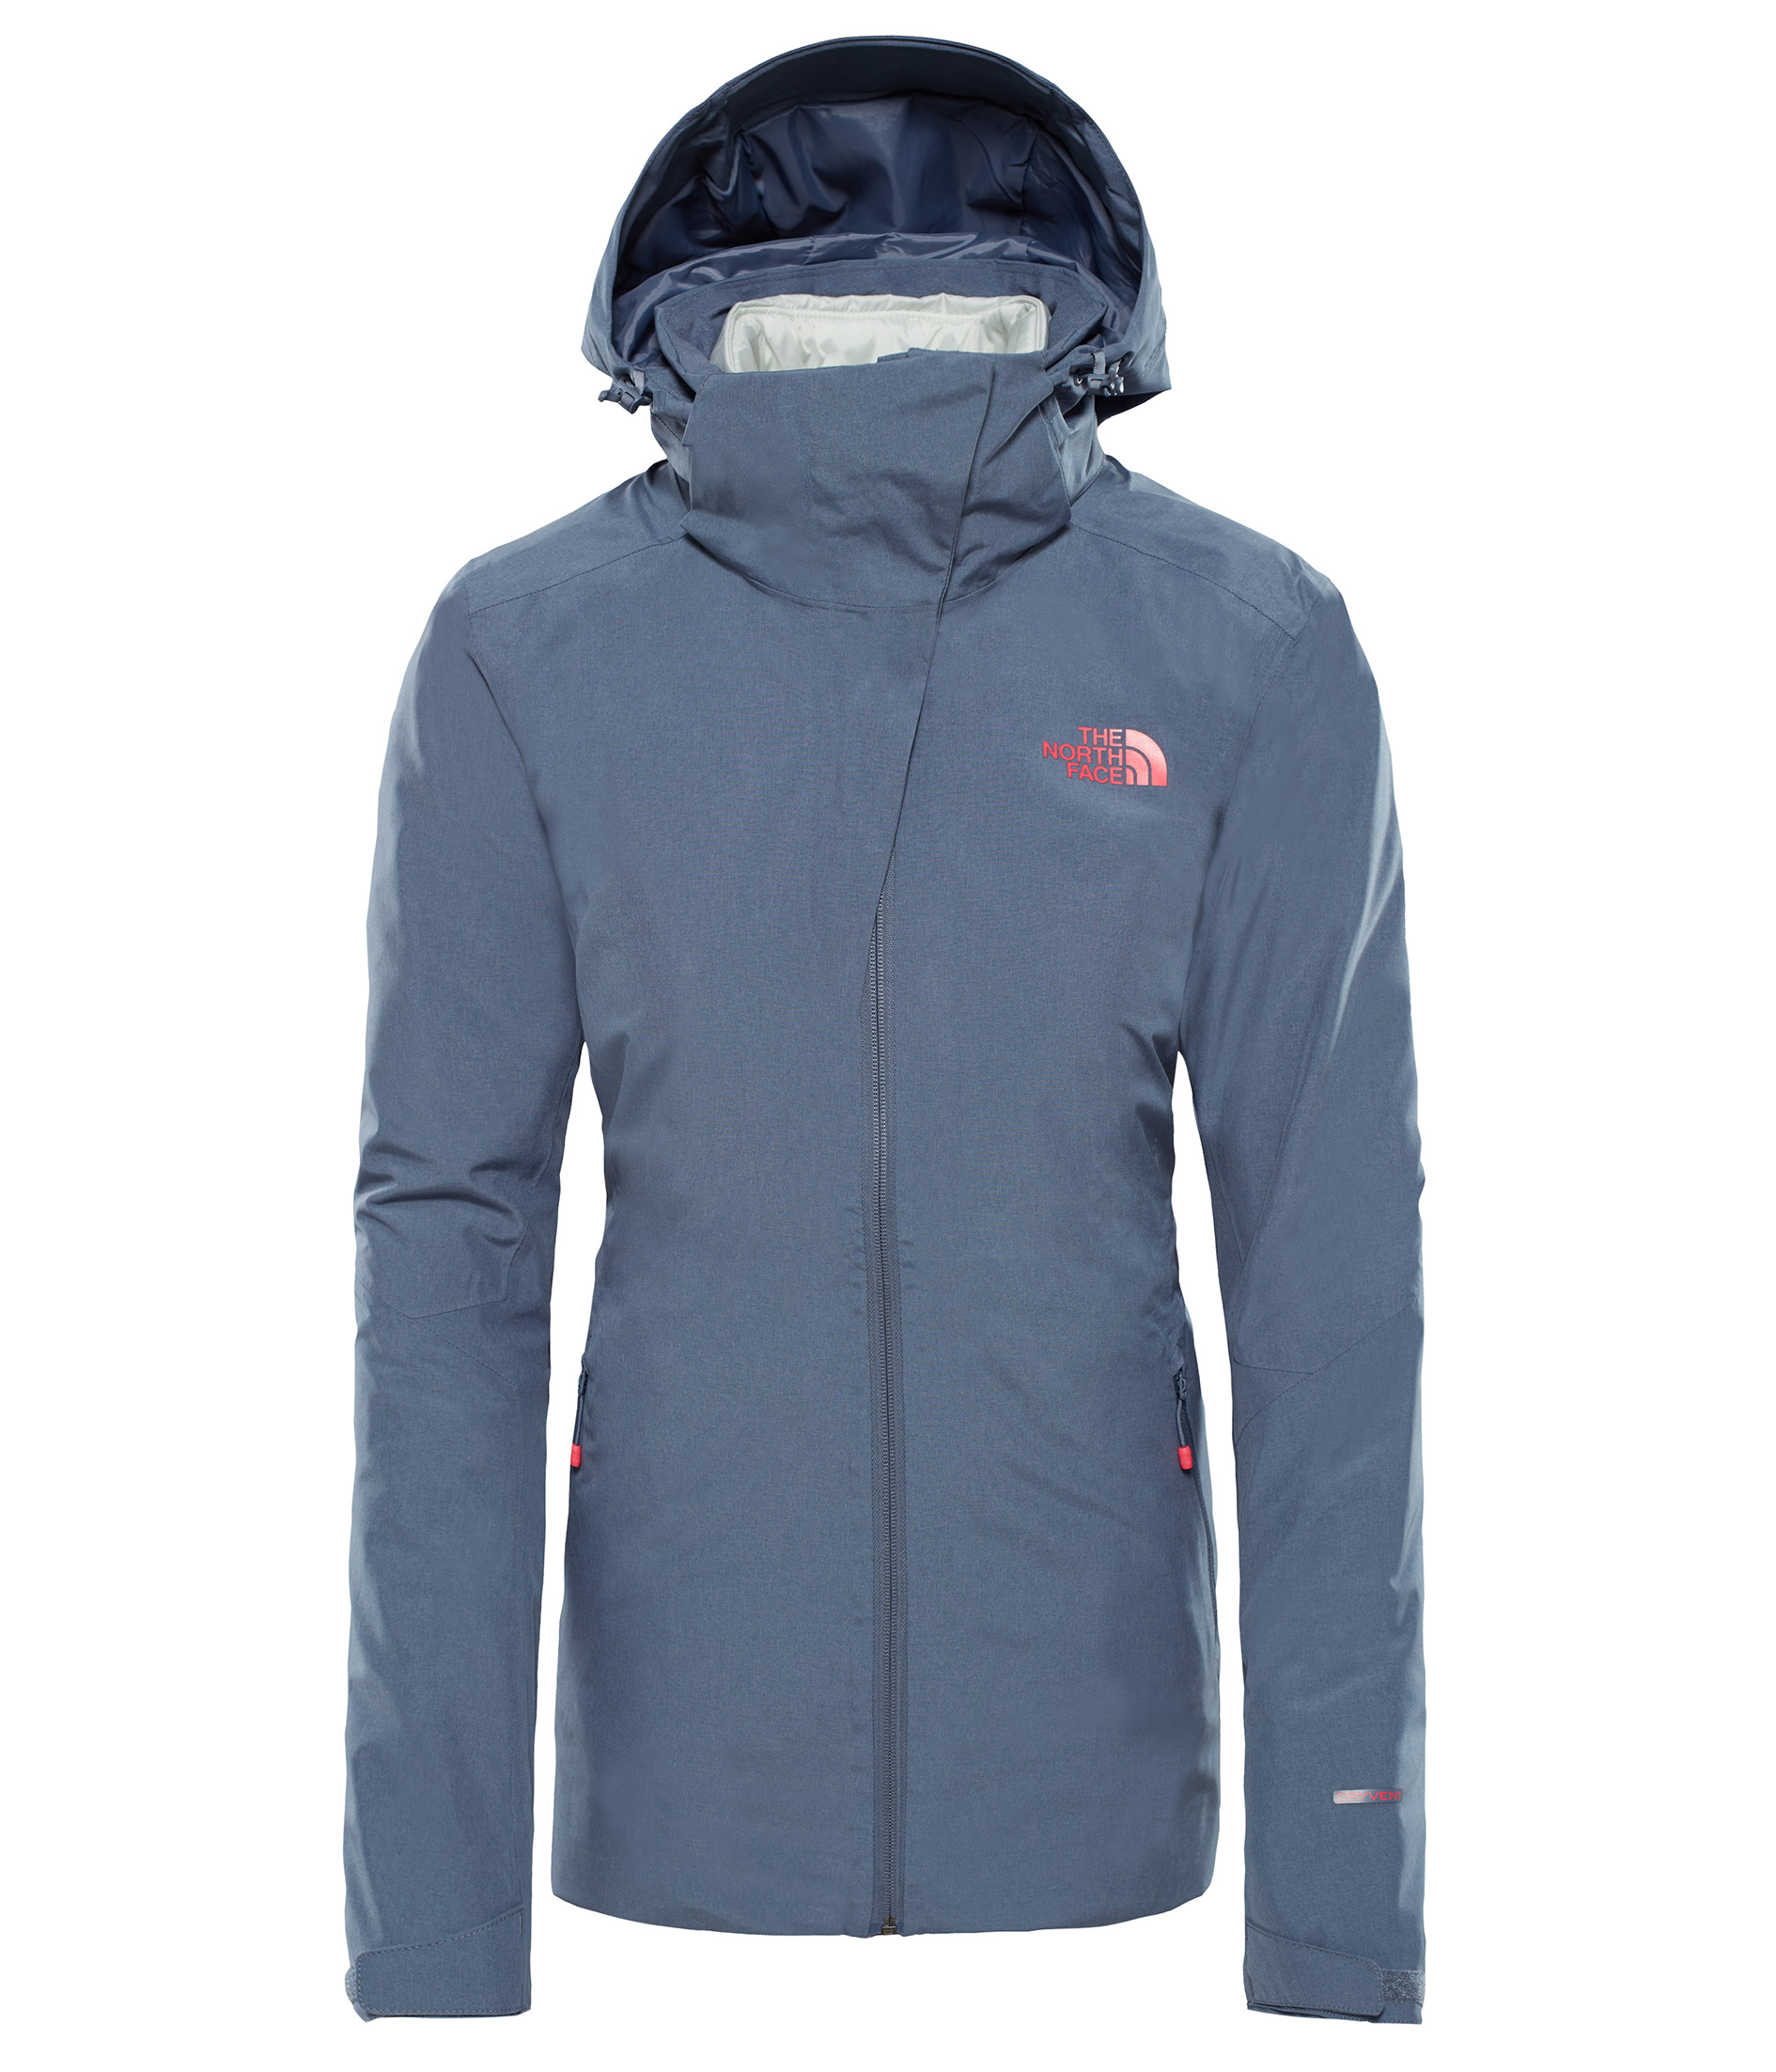 THE NORTH FACE W INLUX TRICLIMATE® - OD, GRISAILLE GREY velikost: M